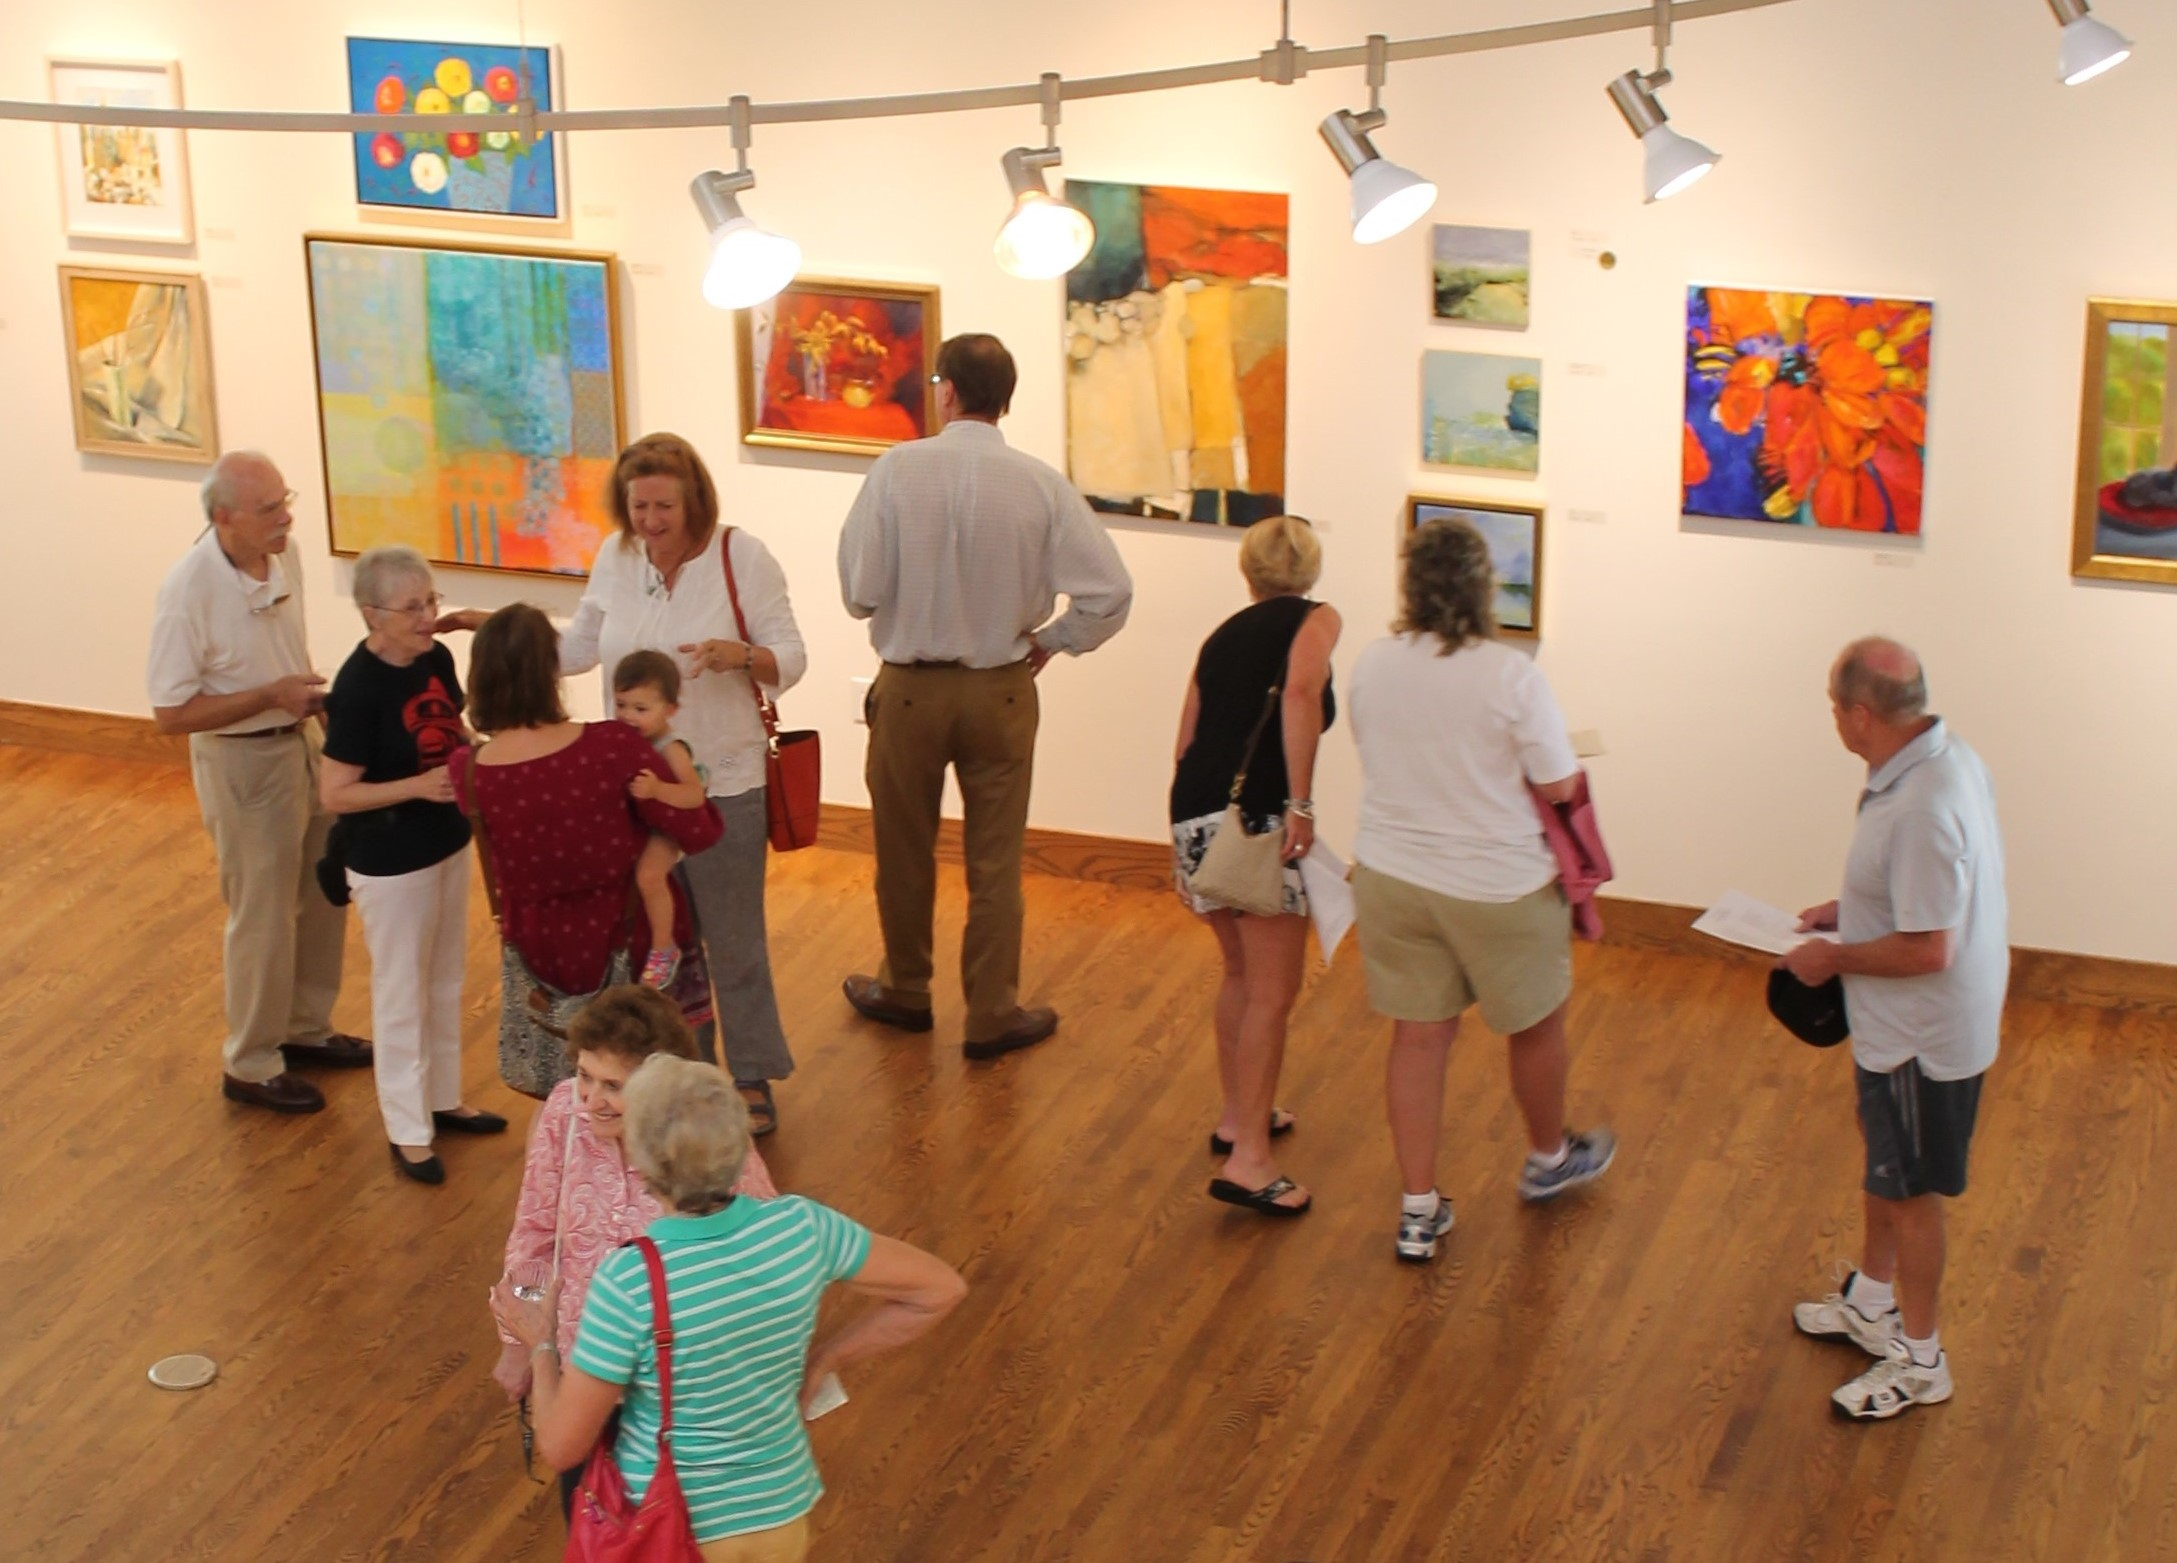 Plans for Inaugural Delco Arts Week to Be Announced Tuesday at Event in Wallingford